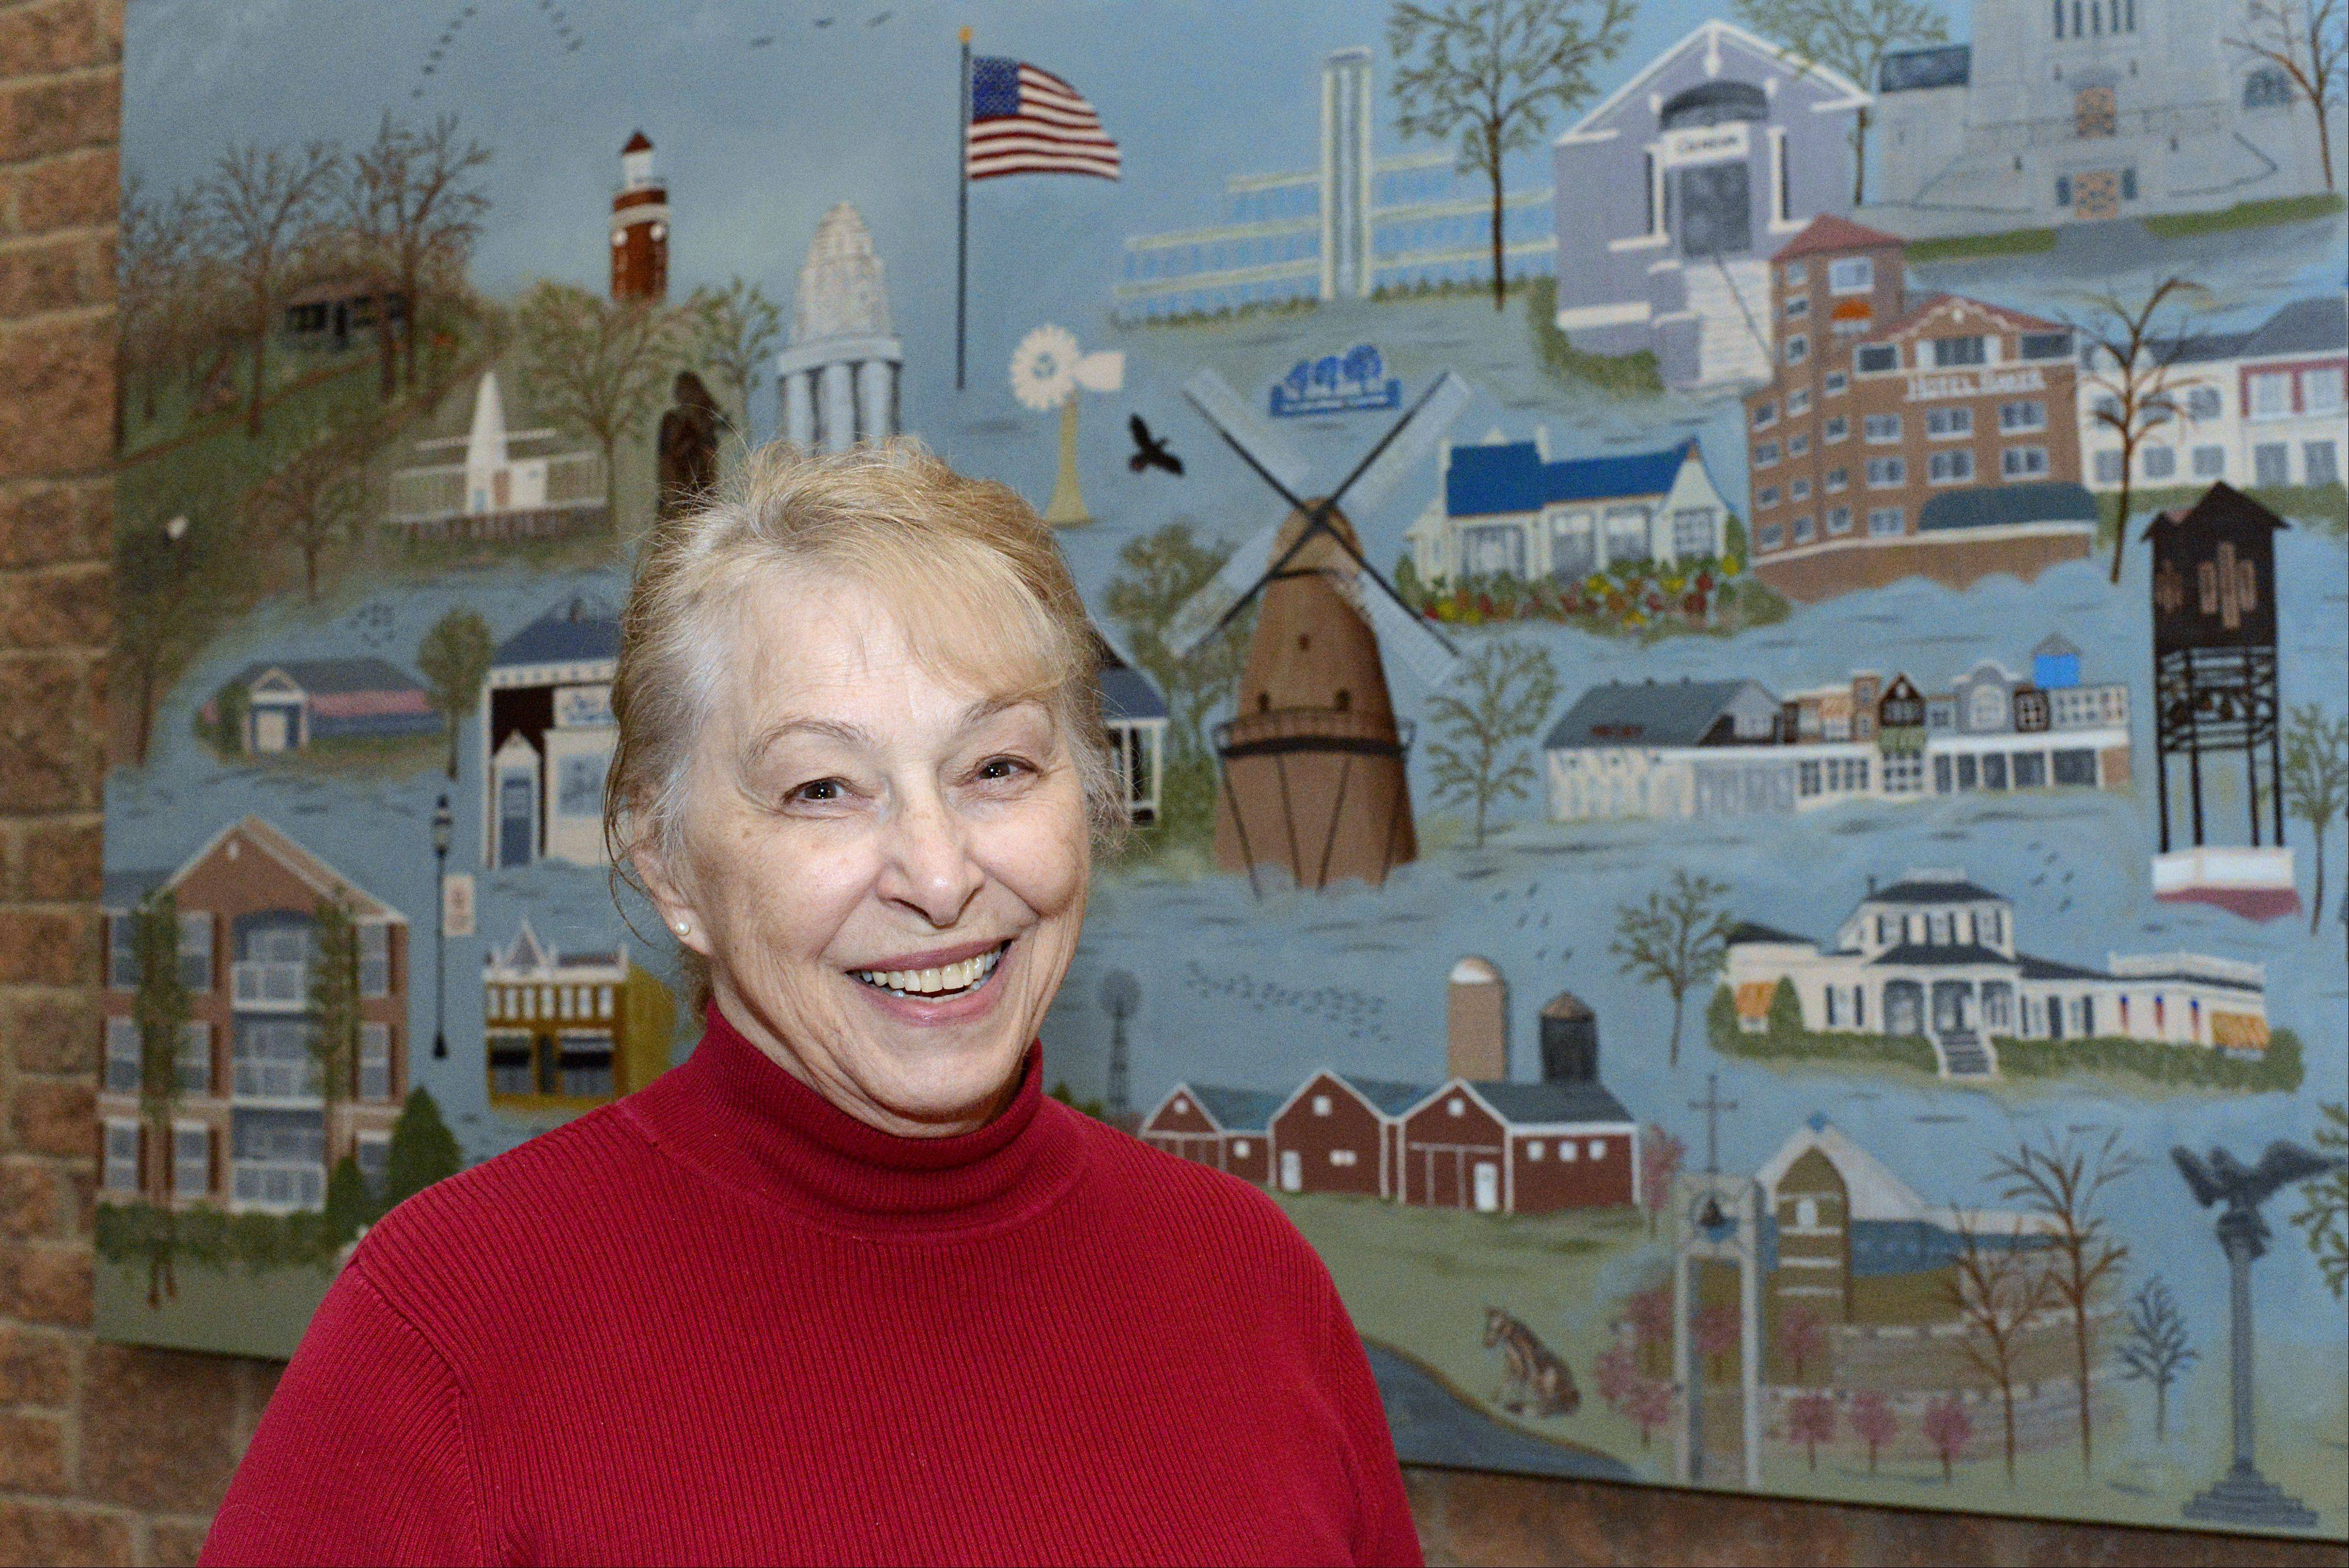 Flora Kaindl, a resident of The Crossings in Geneva, painted murals for the community room of the senior living condo complex. The project took about six months to complete. One mural is of landmark buildings in the Tri-Cities/Fox Valley area. The other is a triptych of the Chicago skyline.